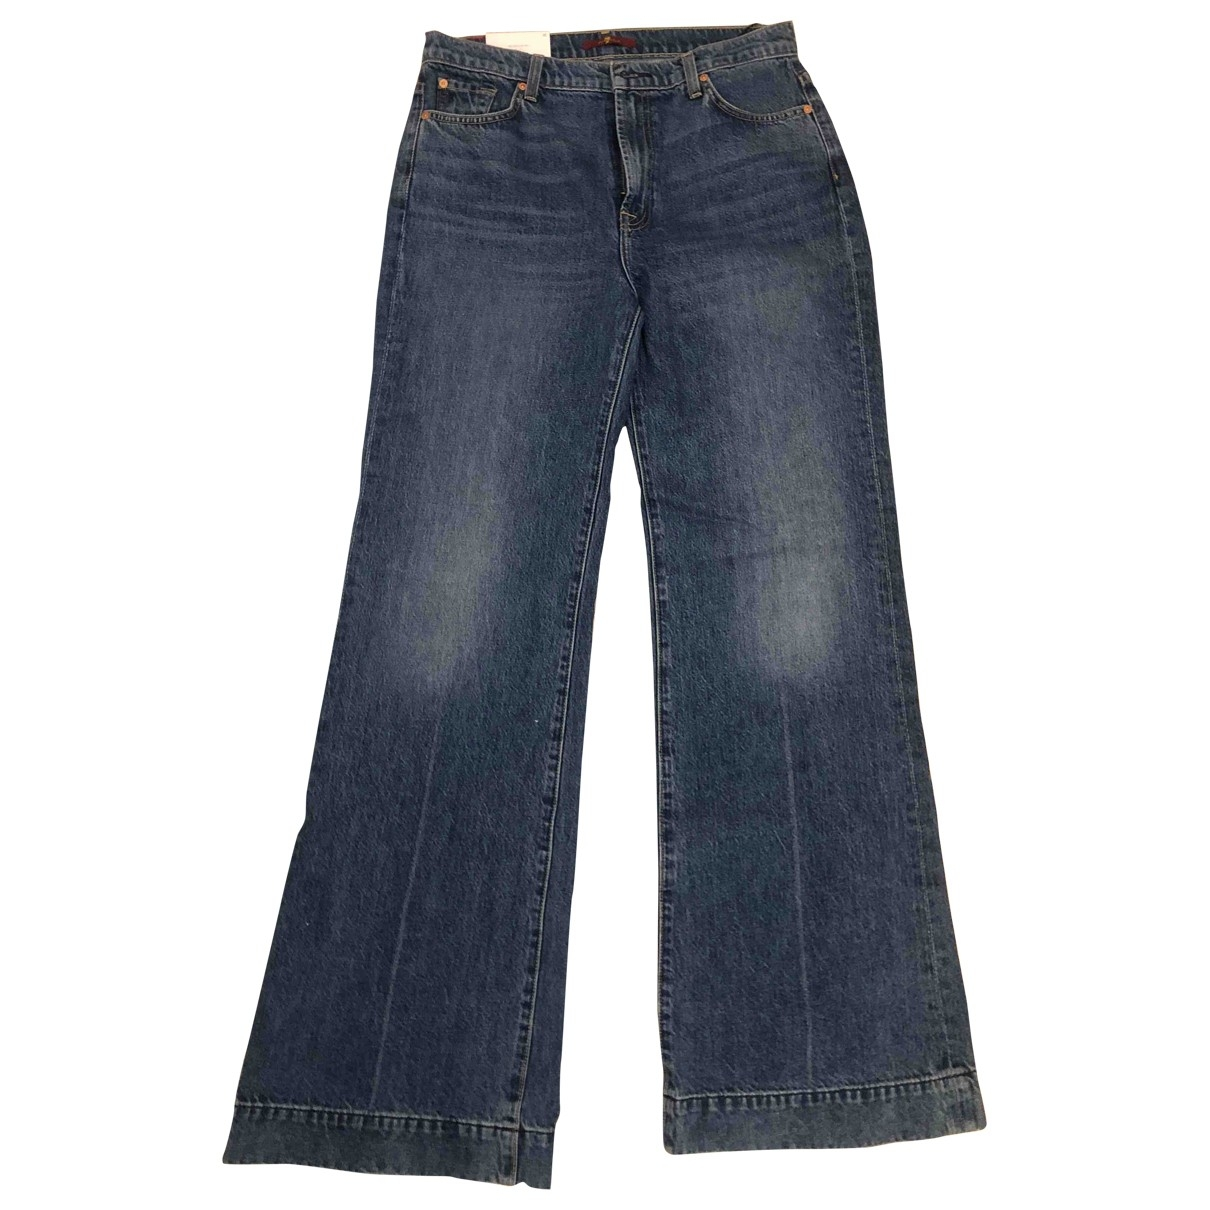 7 For All Mankind \N Blue Denim - Jeans Jeans for Women 31 US